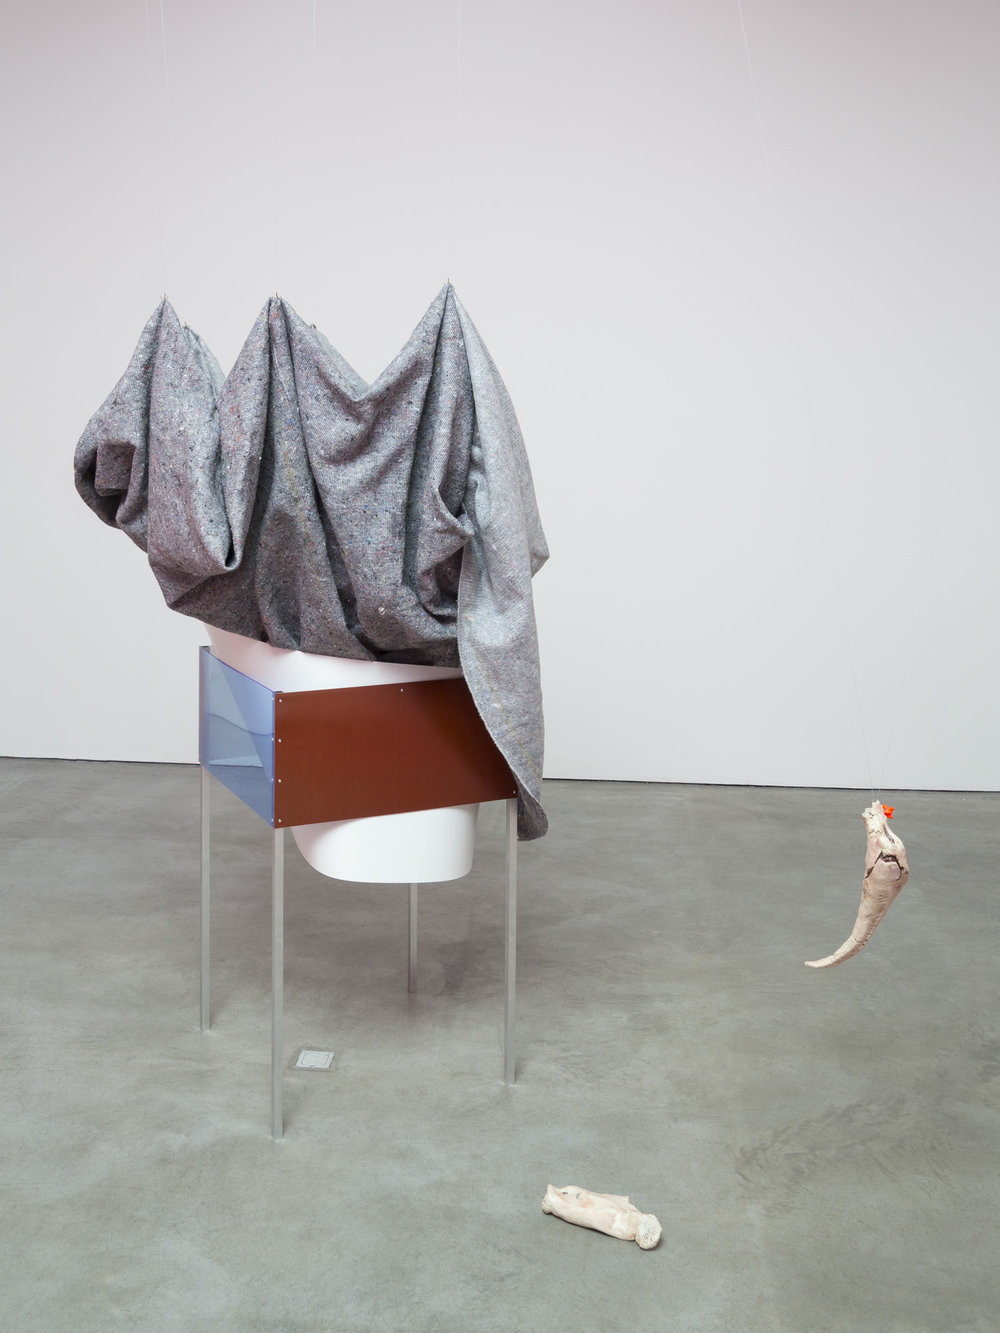 Gleichgewicht , 2014  Aluminum, steel, sound, lacquer, furniture blankets, fishing line, fish hook  Dimensions variable